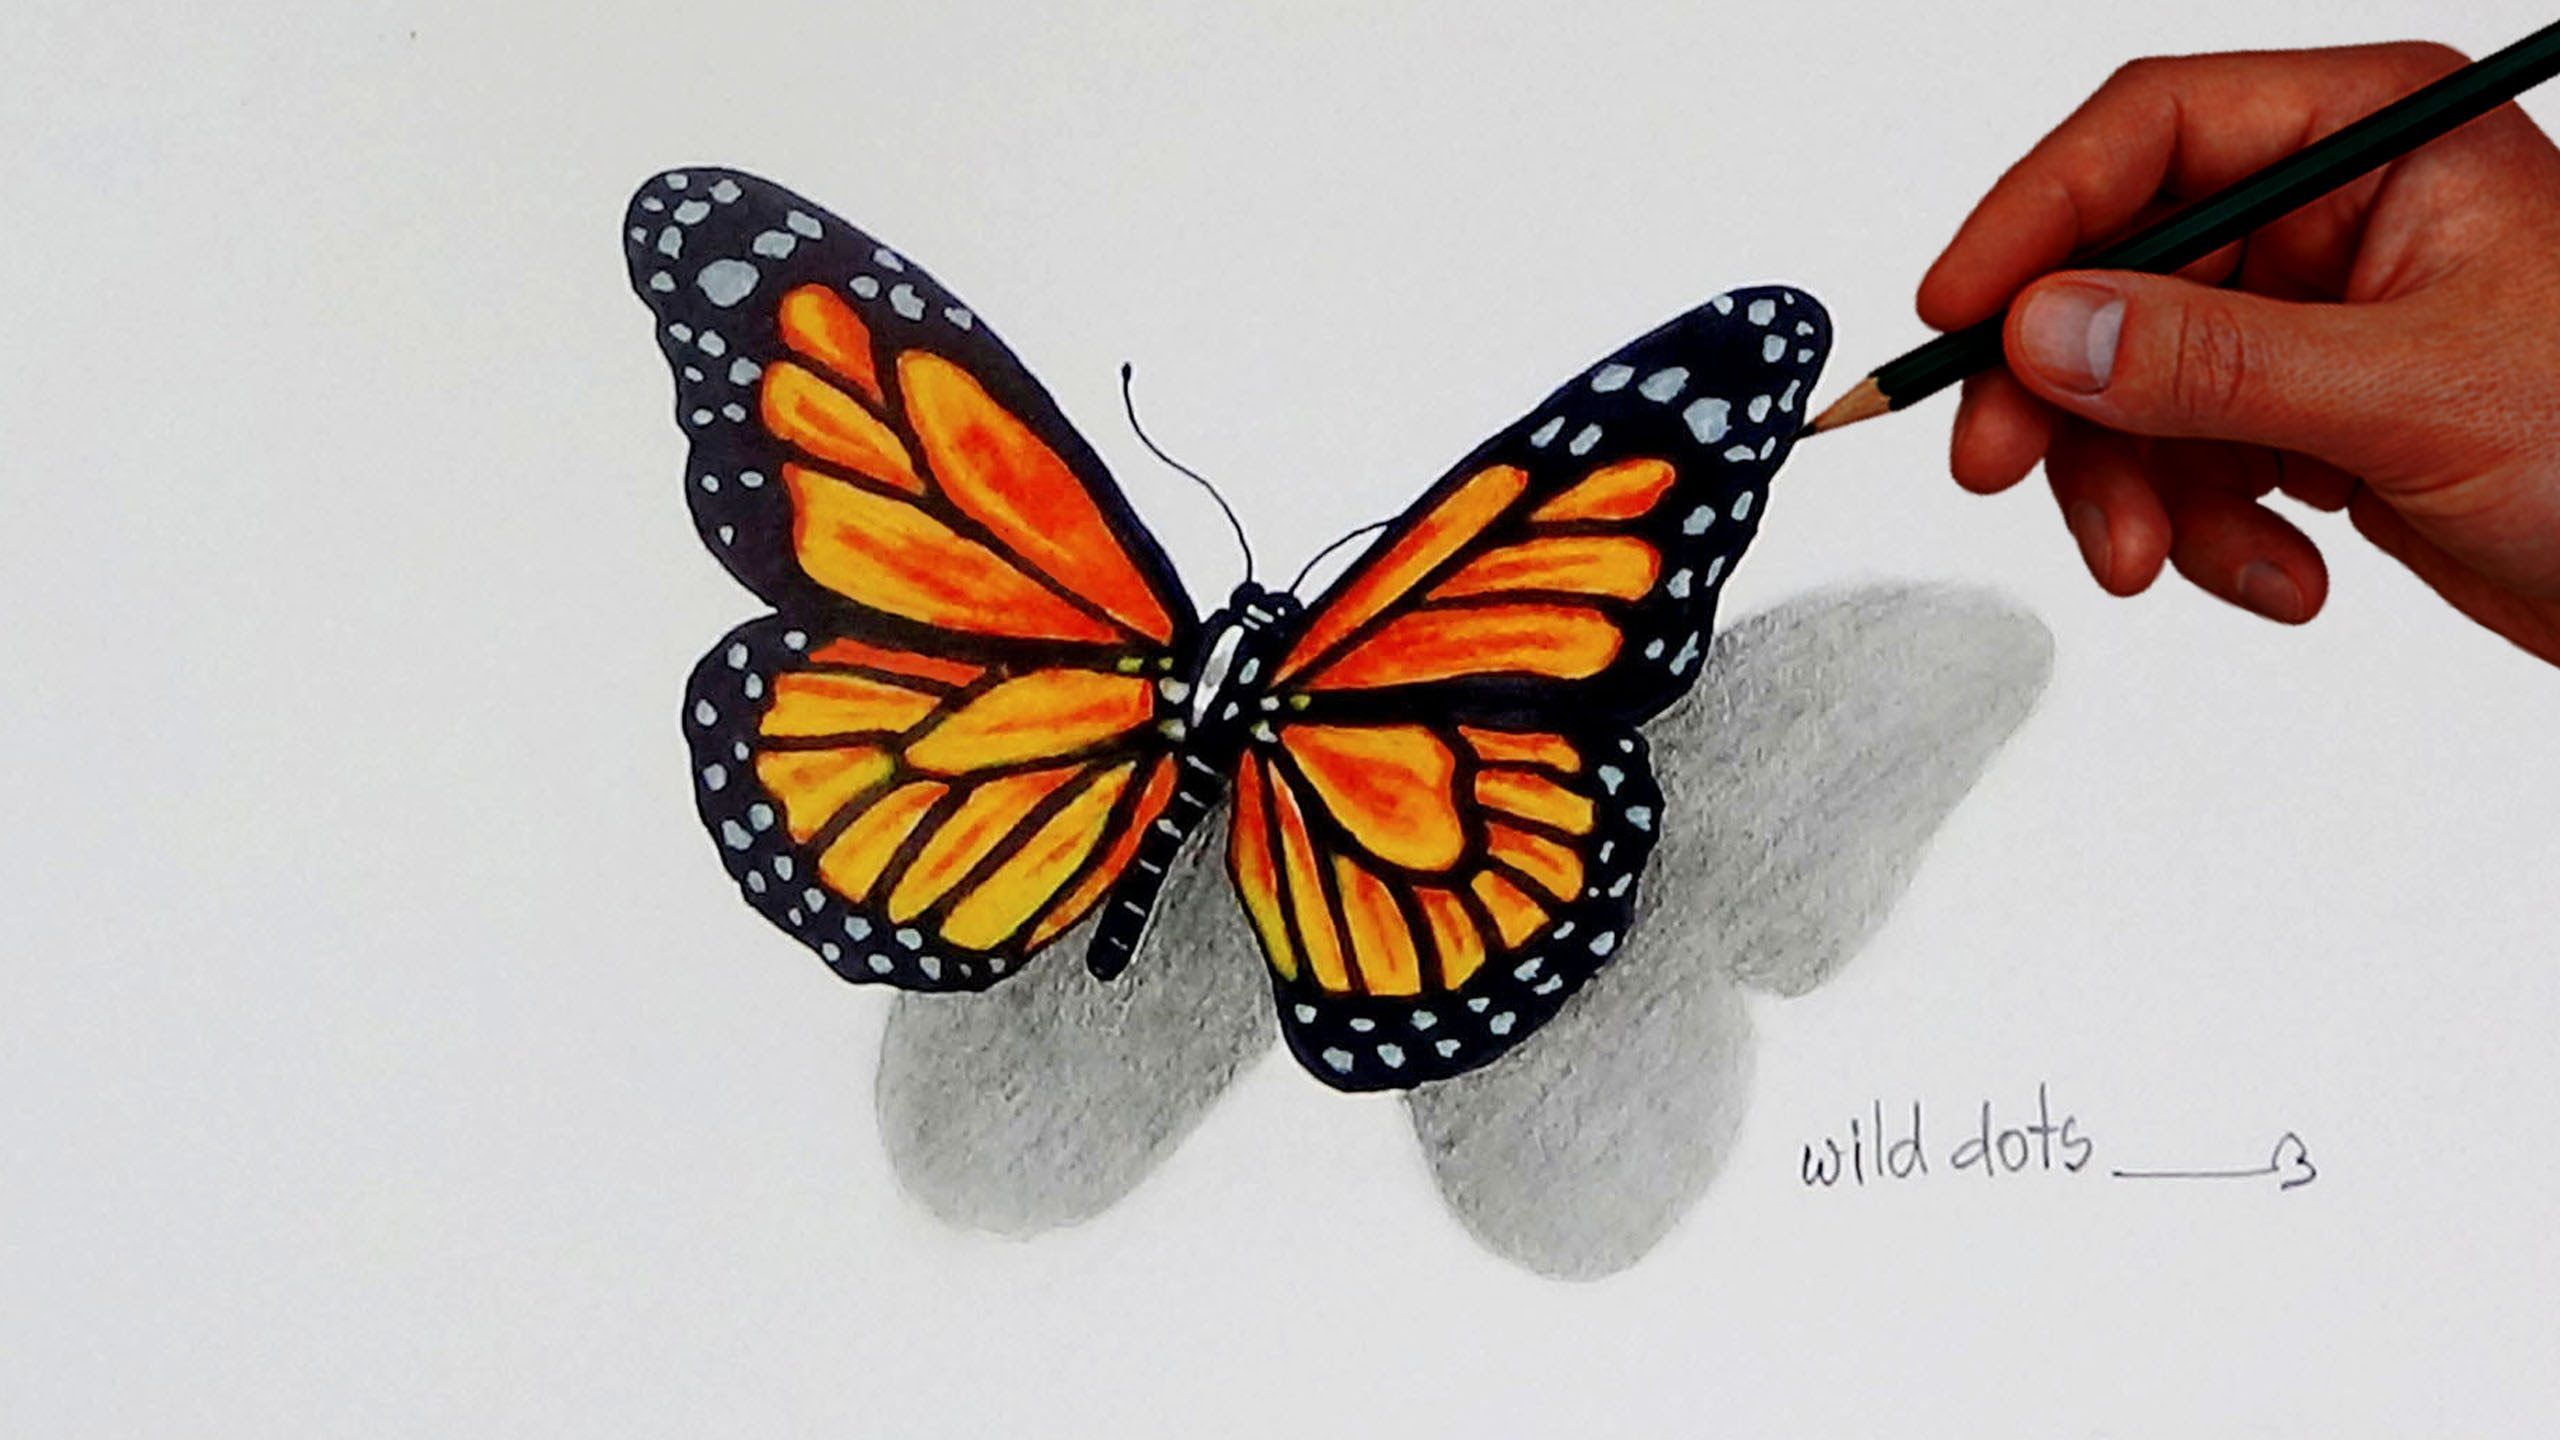 How To Draw A Butterfly Simple And Easy Steps Butterfly Drawing Butterfly Sketch Easy Butterfly Drawing